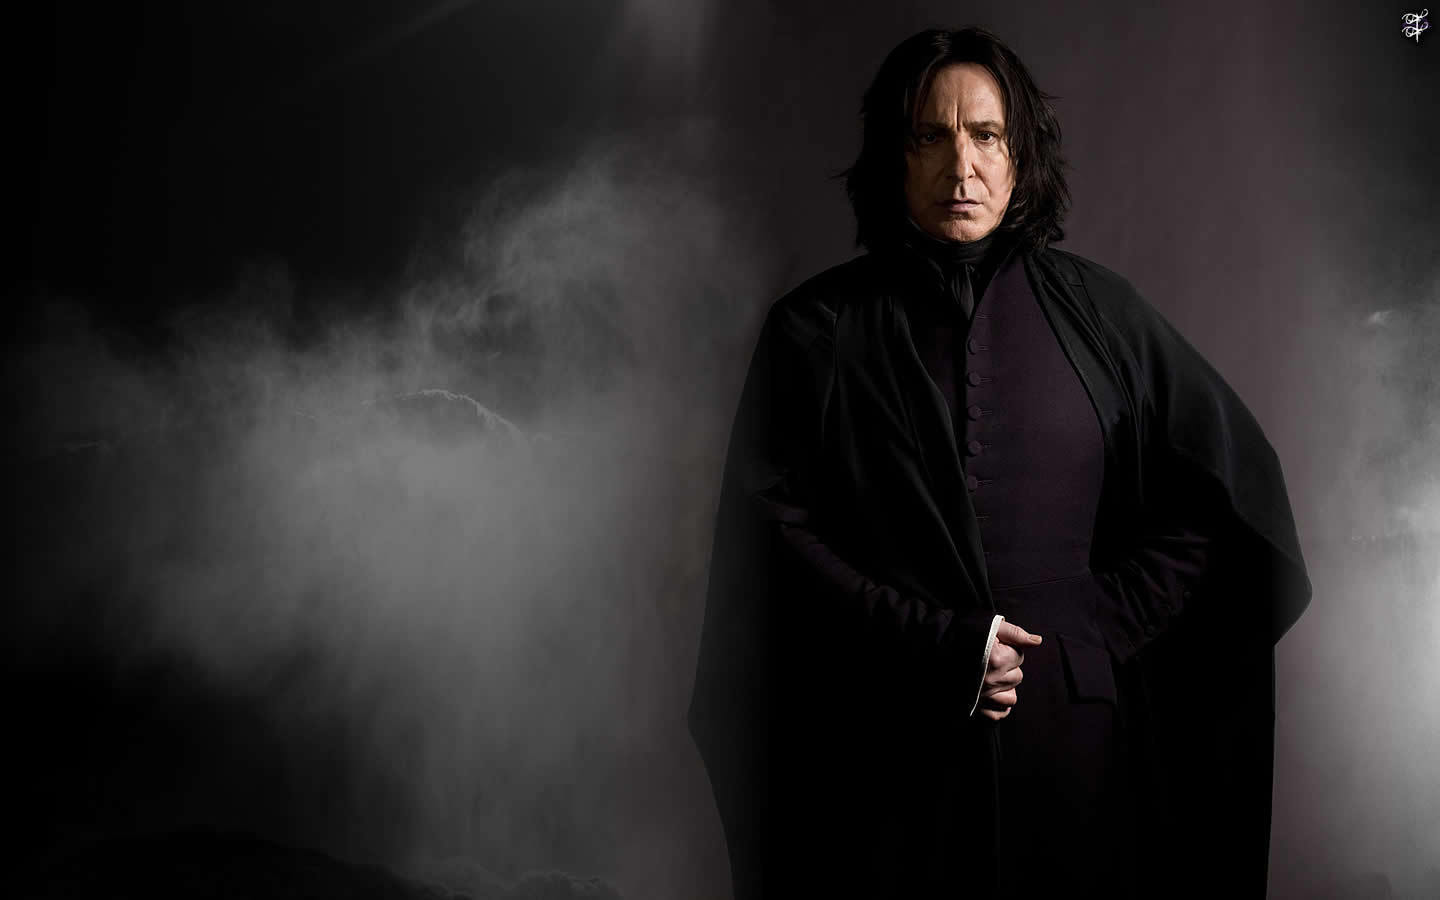 Well, I loved Snape's entrance, in full stride, cape billowing.